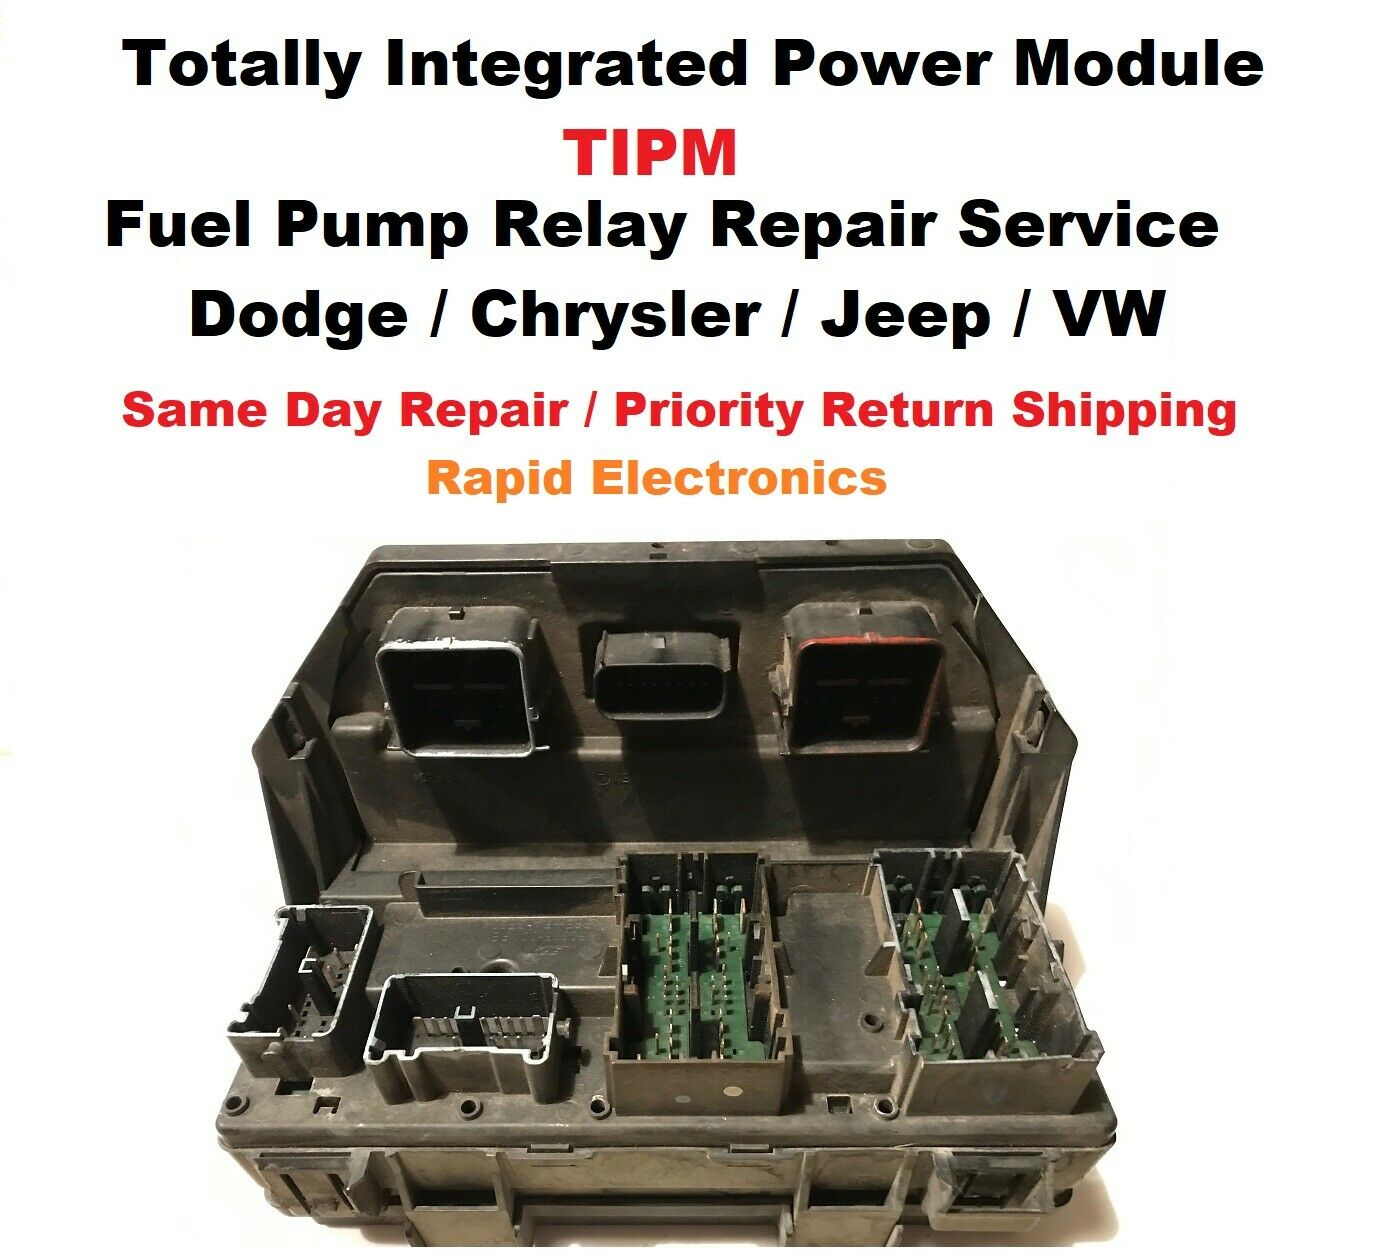 Dodge Ram 1500 2500 3500 2011 2013 Tipm Fuse Box Fuel Pump Relay Rav4 1 Of 1only 4 Available